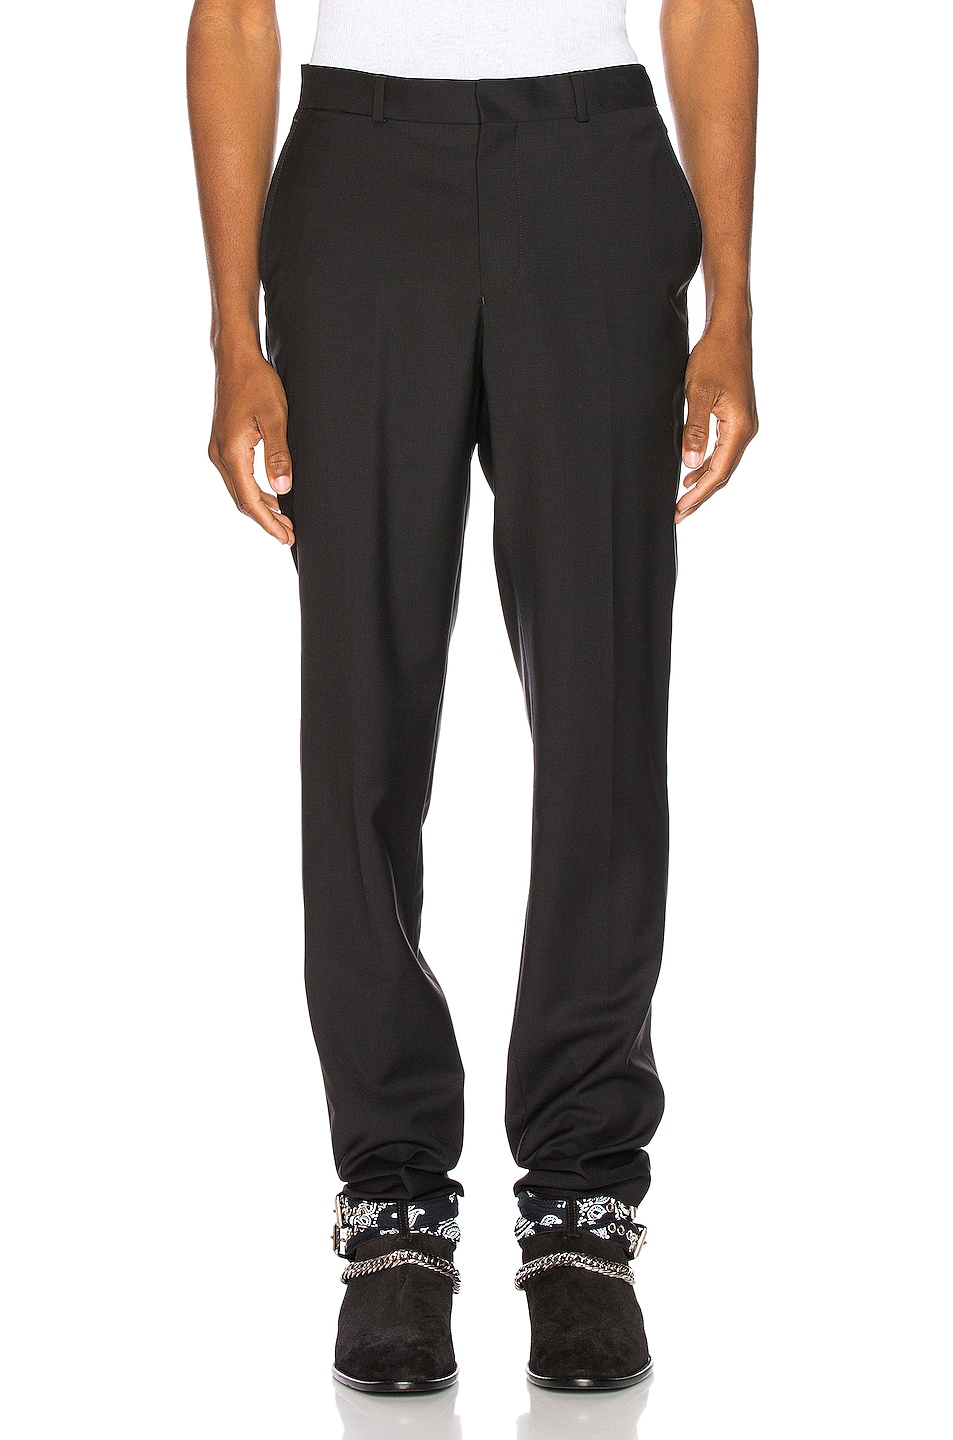 Image 1 of SSS World Corp Suit Pant in Black